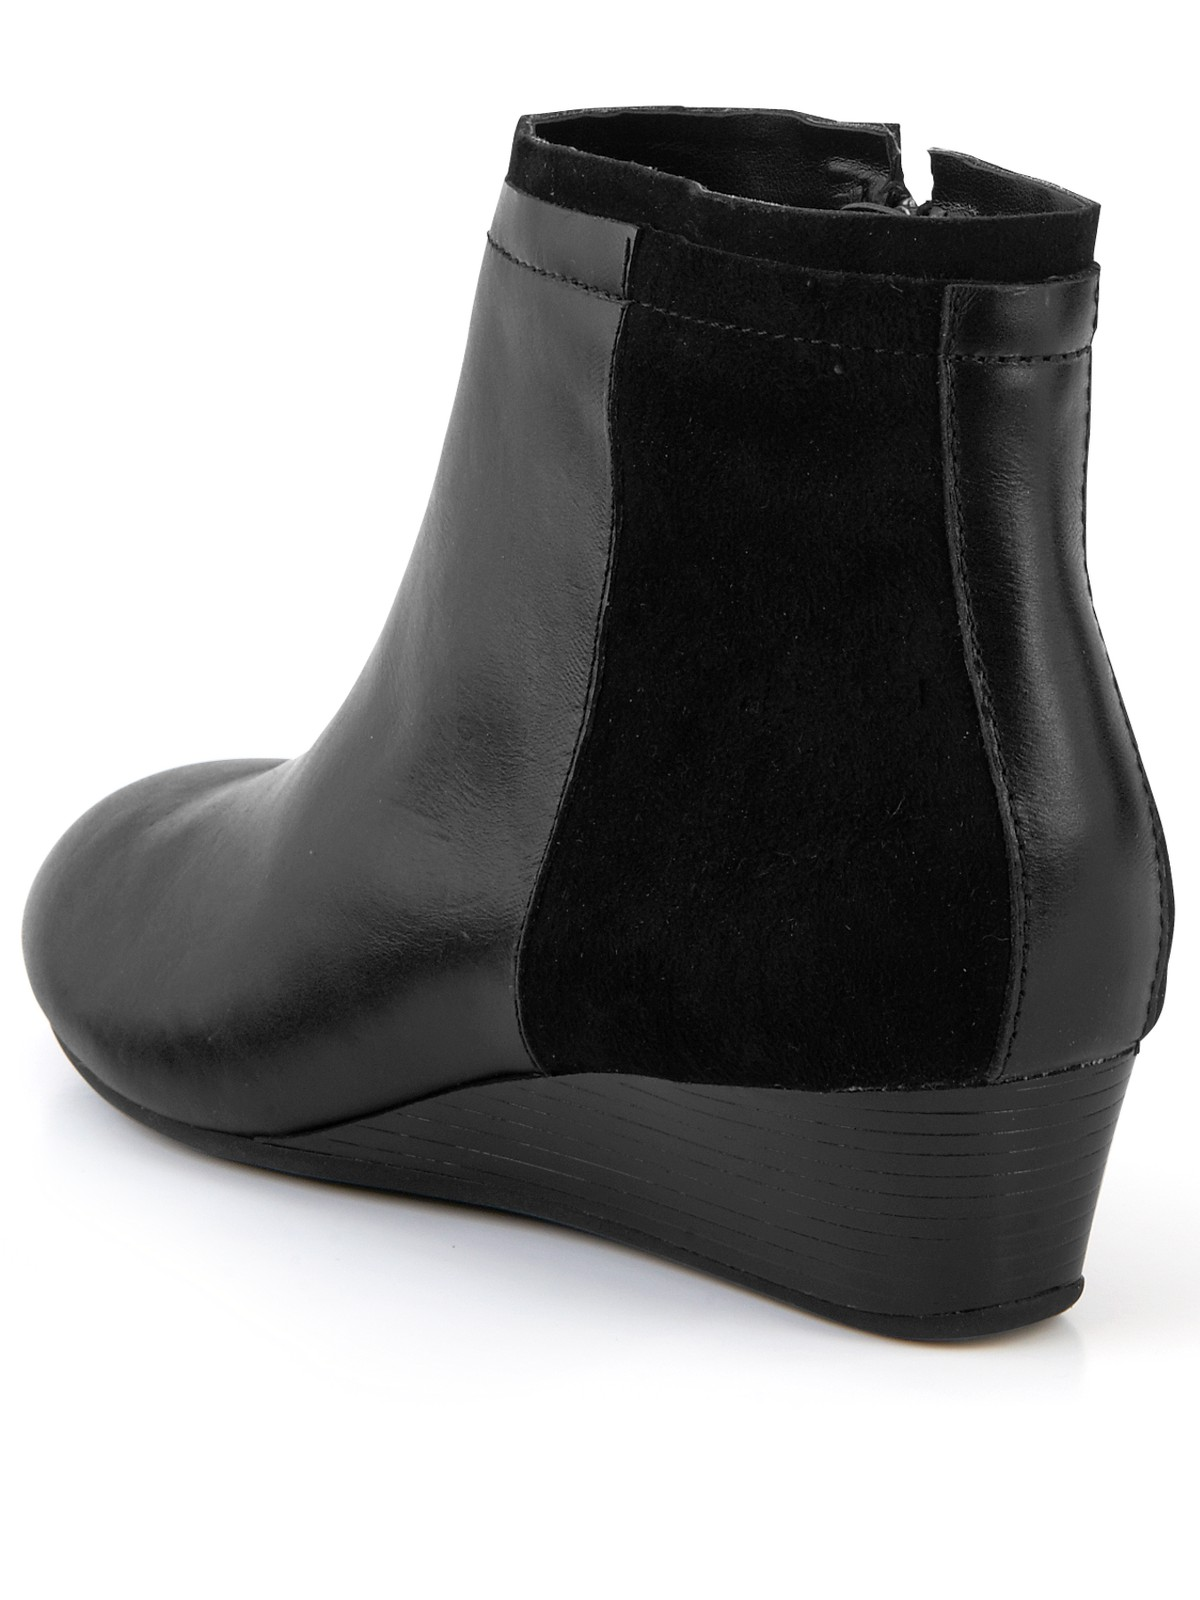 hush puppies 174 hush puppies candid low wedge boots in black